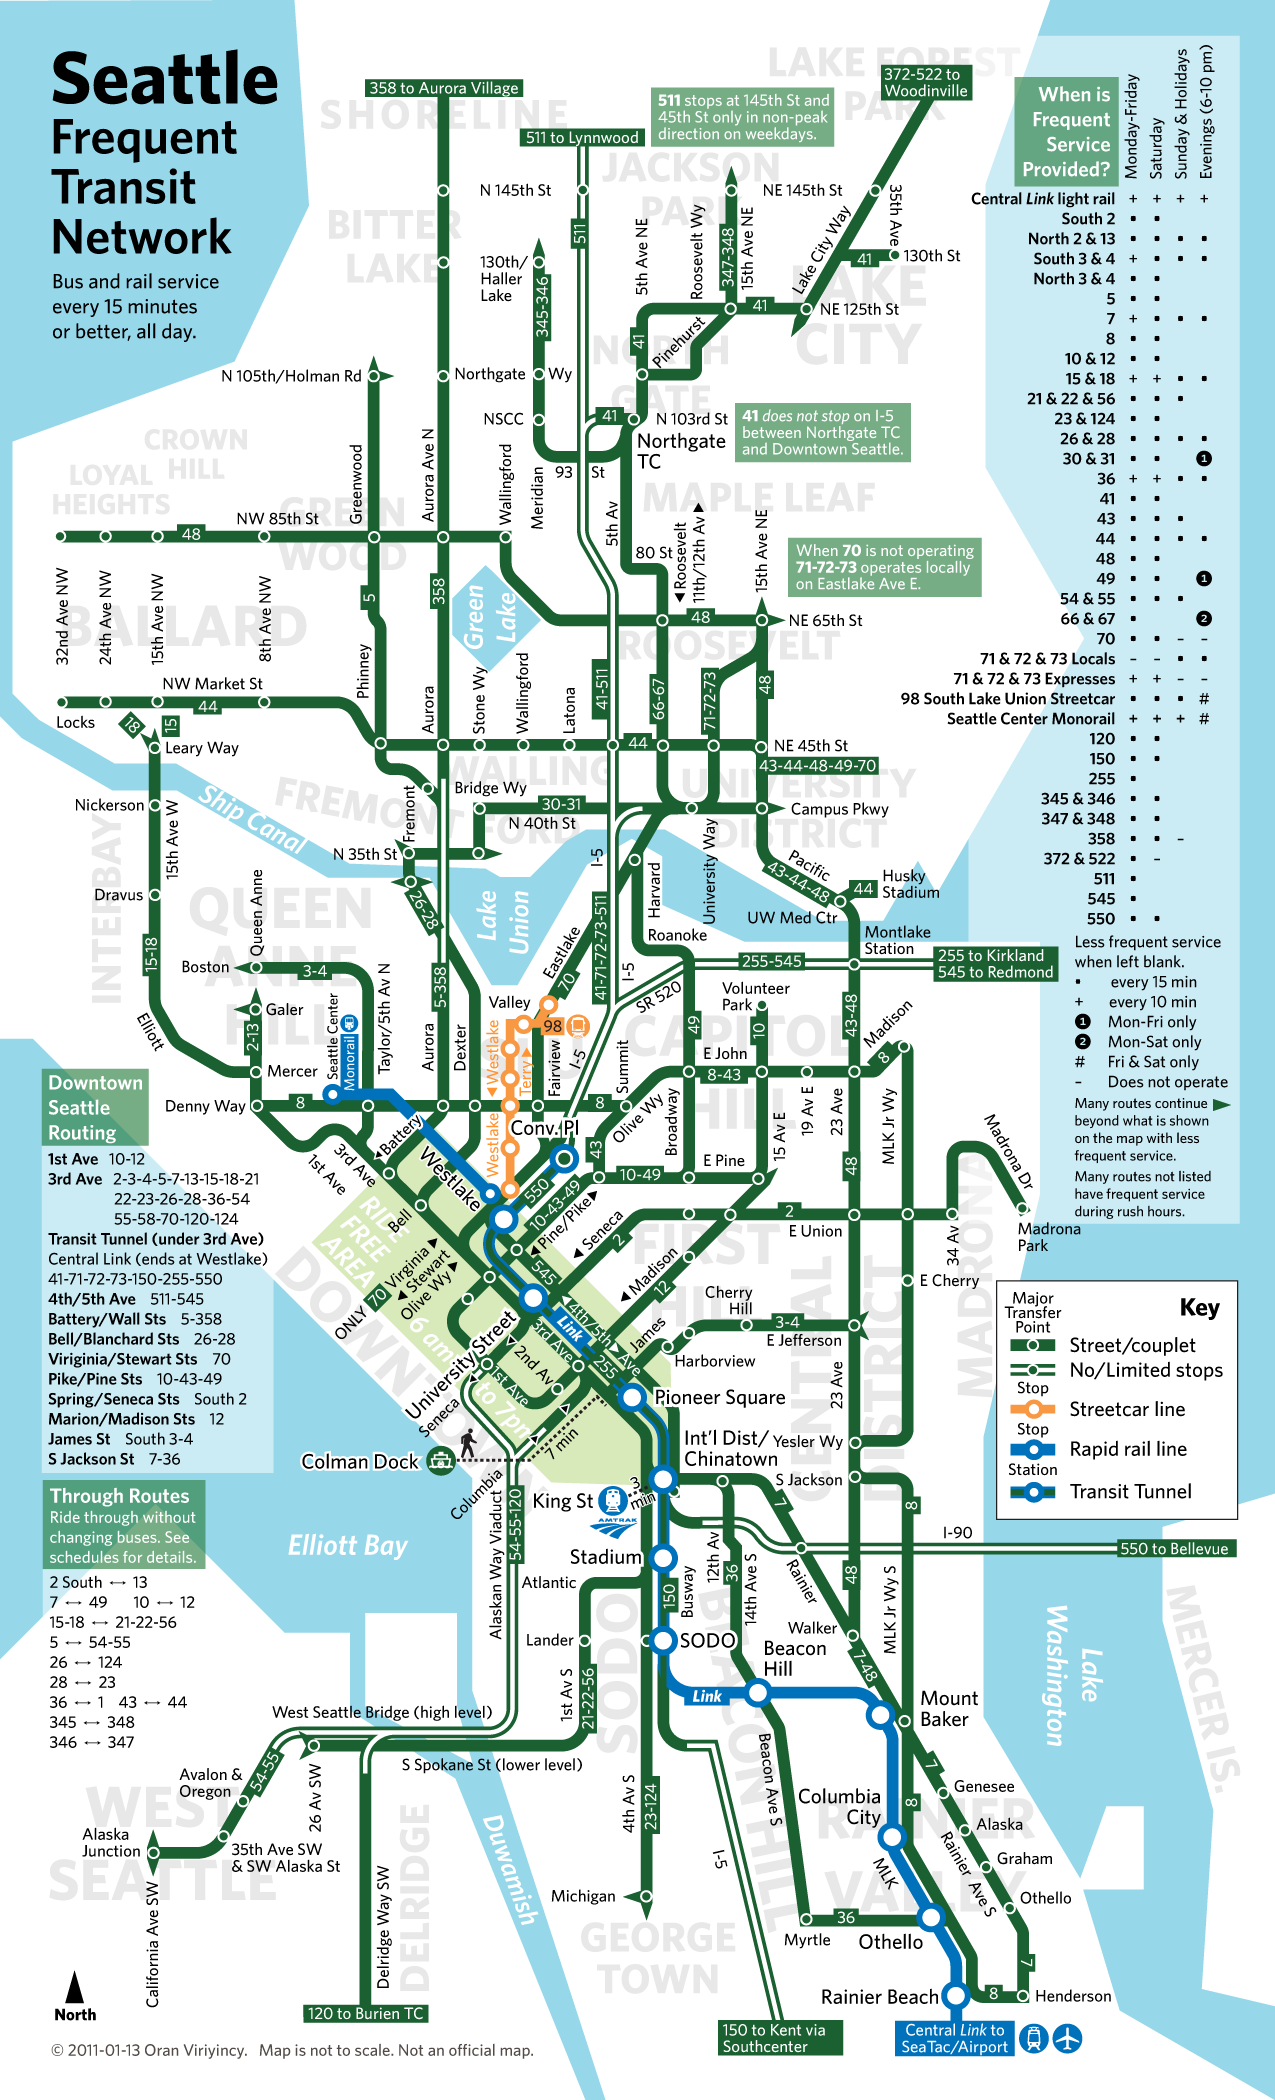 Pin canadian national railroad map on pinterest - Everything You Need To Know About Seattle S Public Transportation Collected In A Single Map